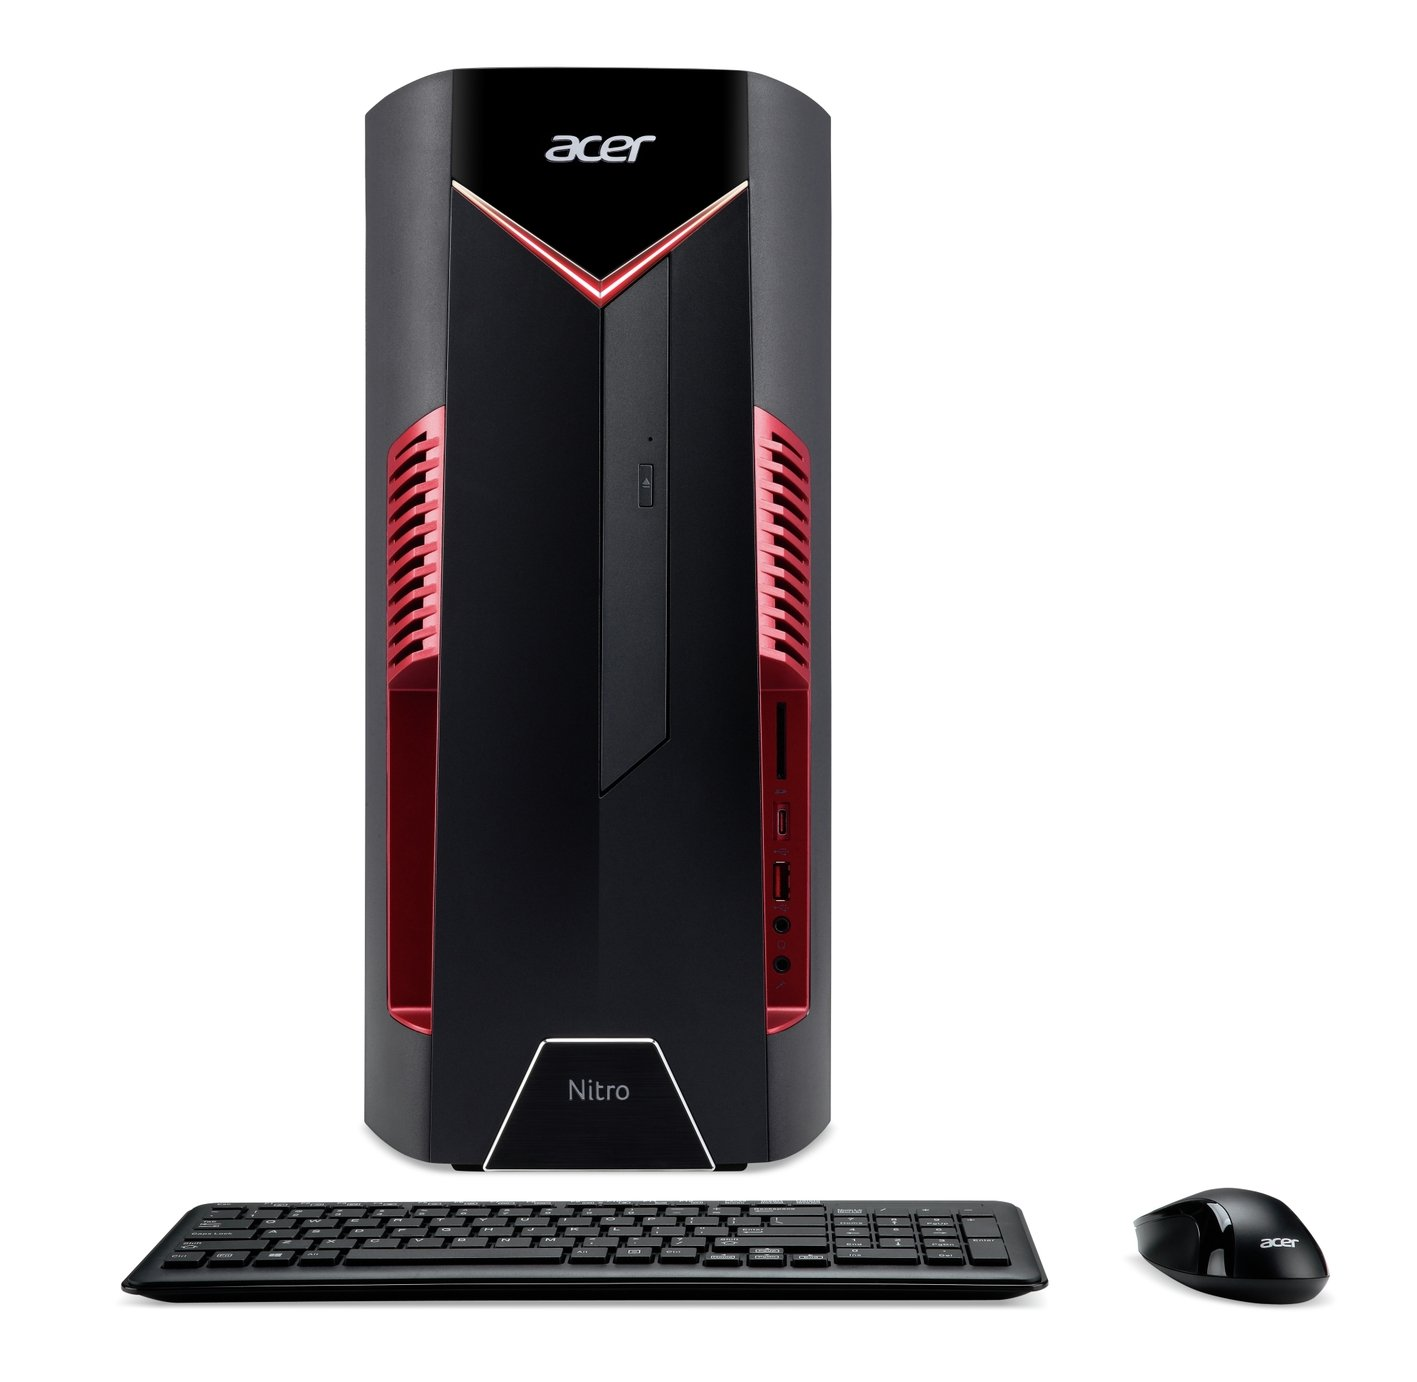 Acer Nitro N50-600 i5 16GB 1TB 256GB GTX1660Ti Gaming PC